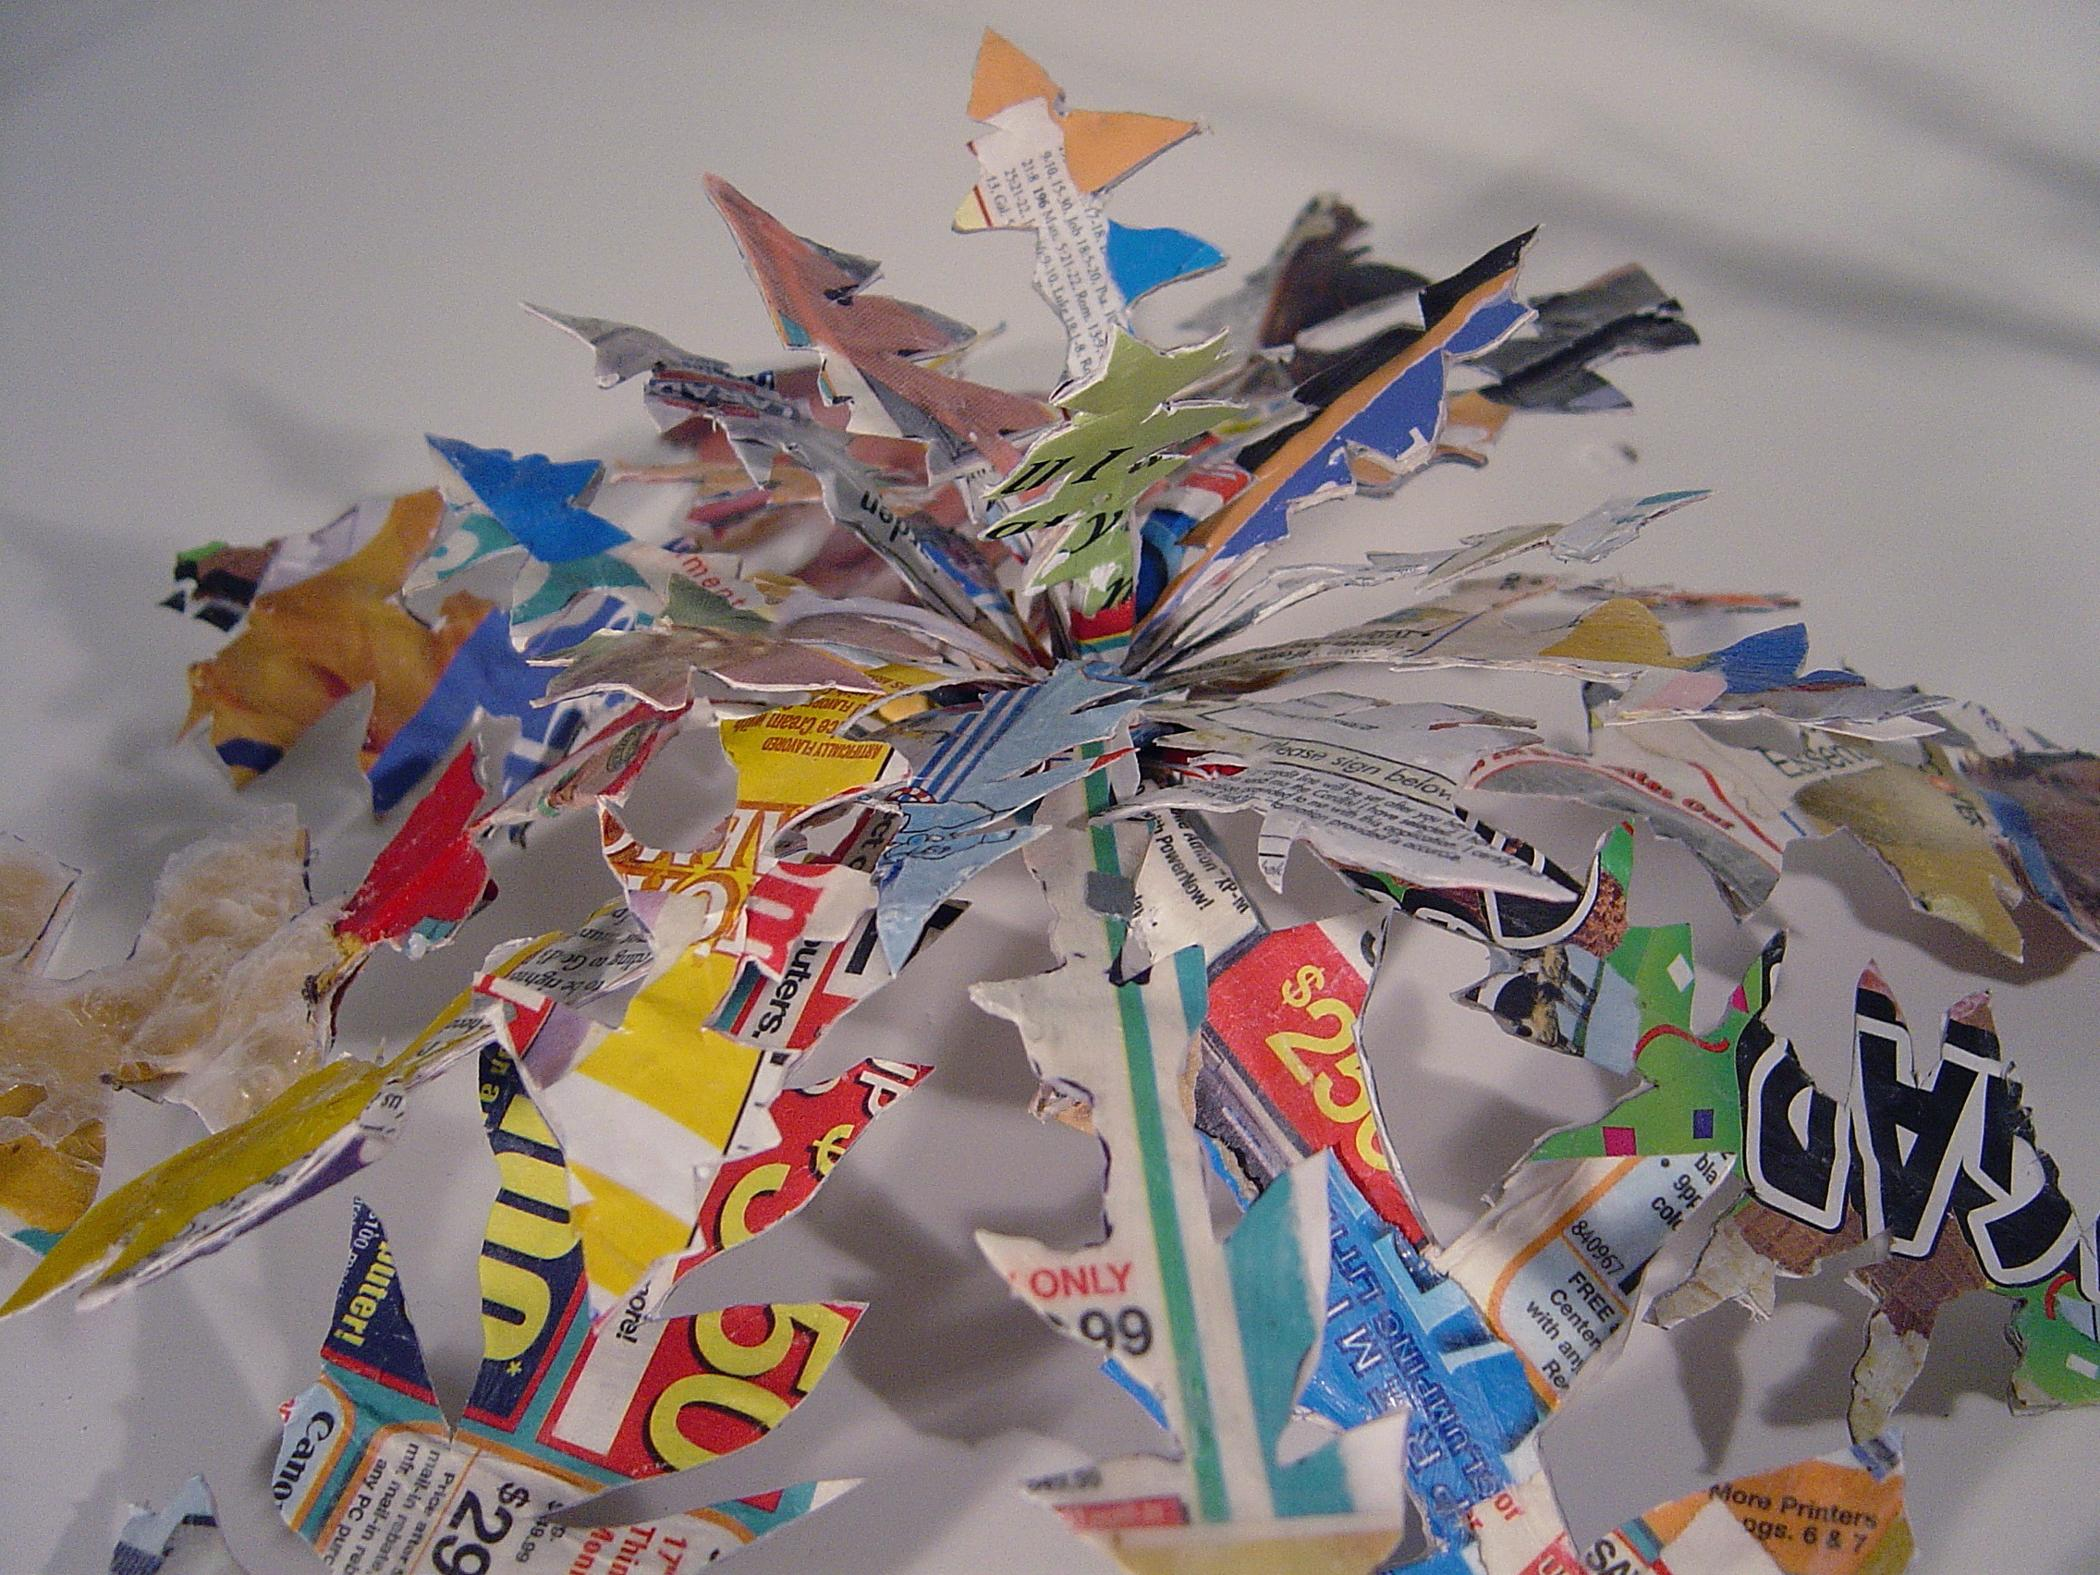 A sculpture in the shape of a plant is made out of various colorful newspaper ads.